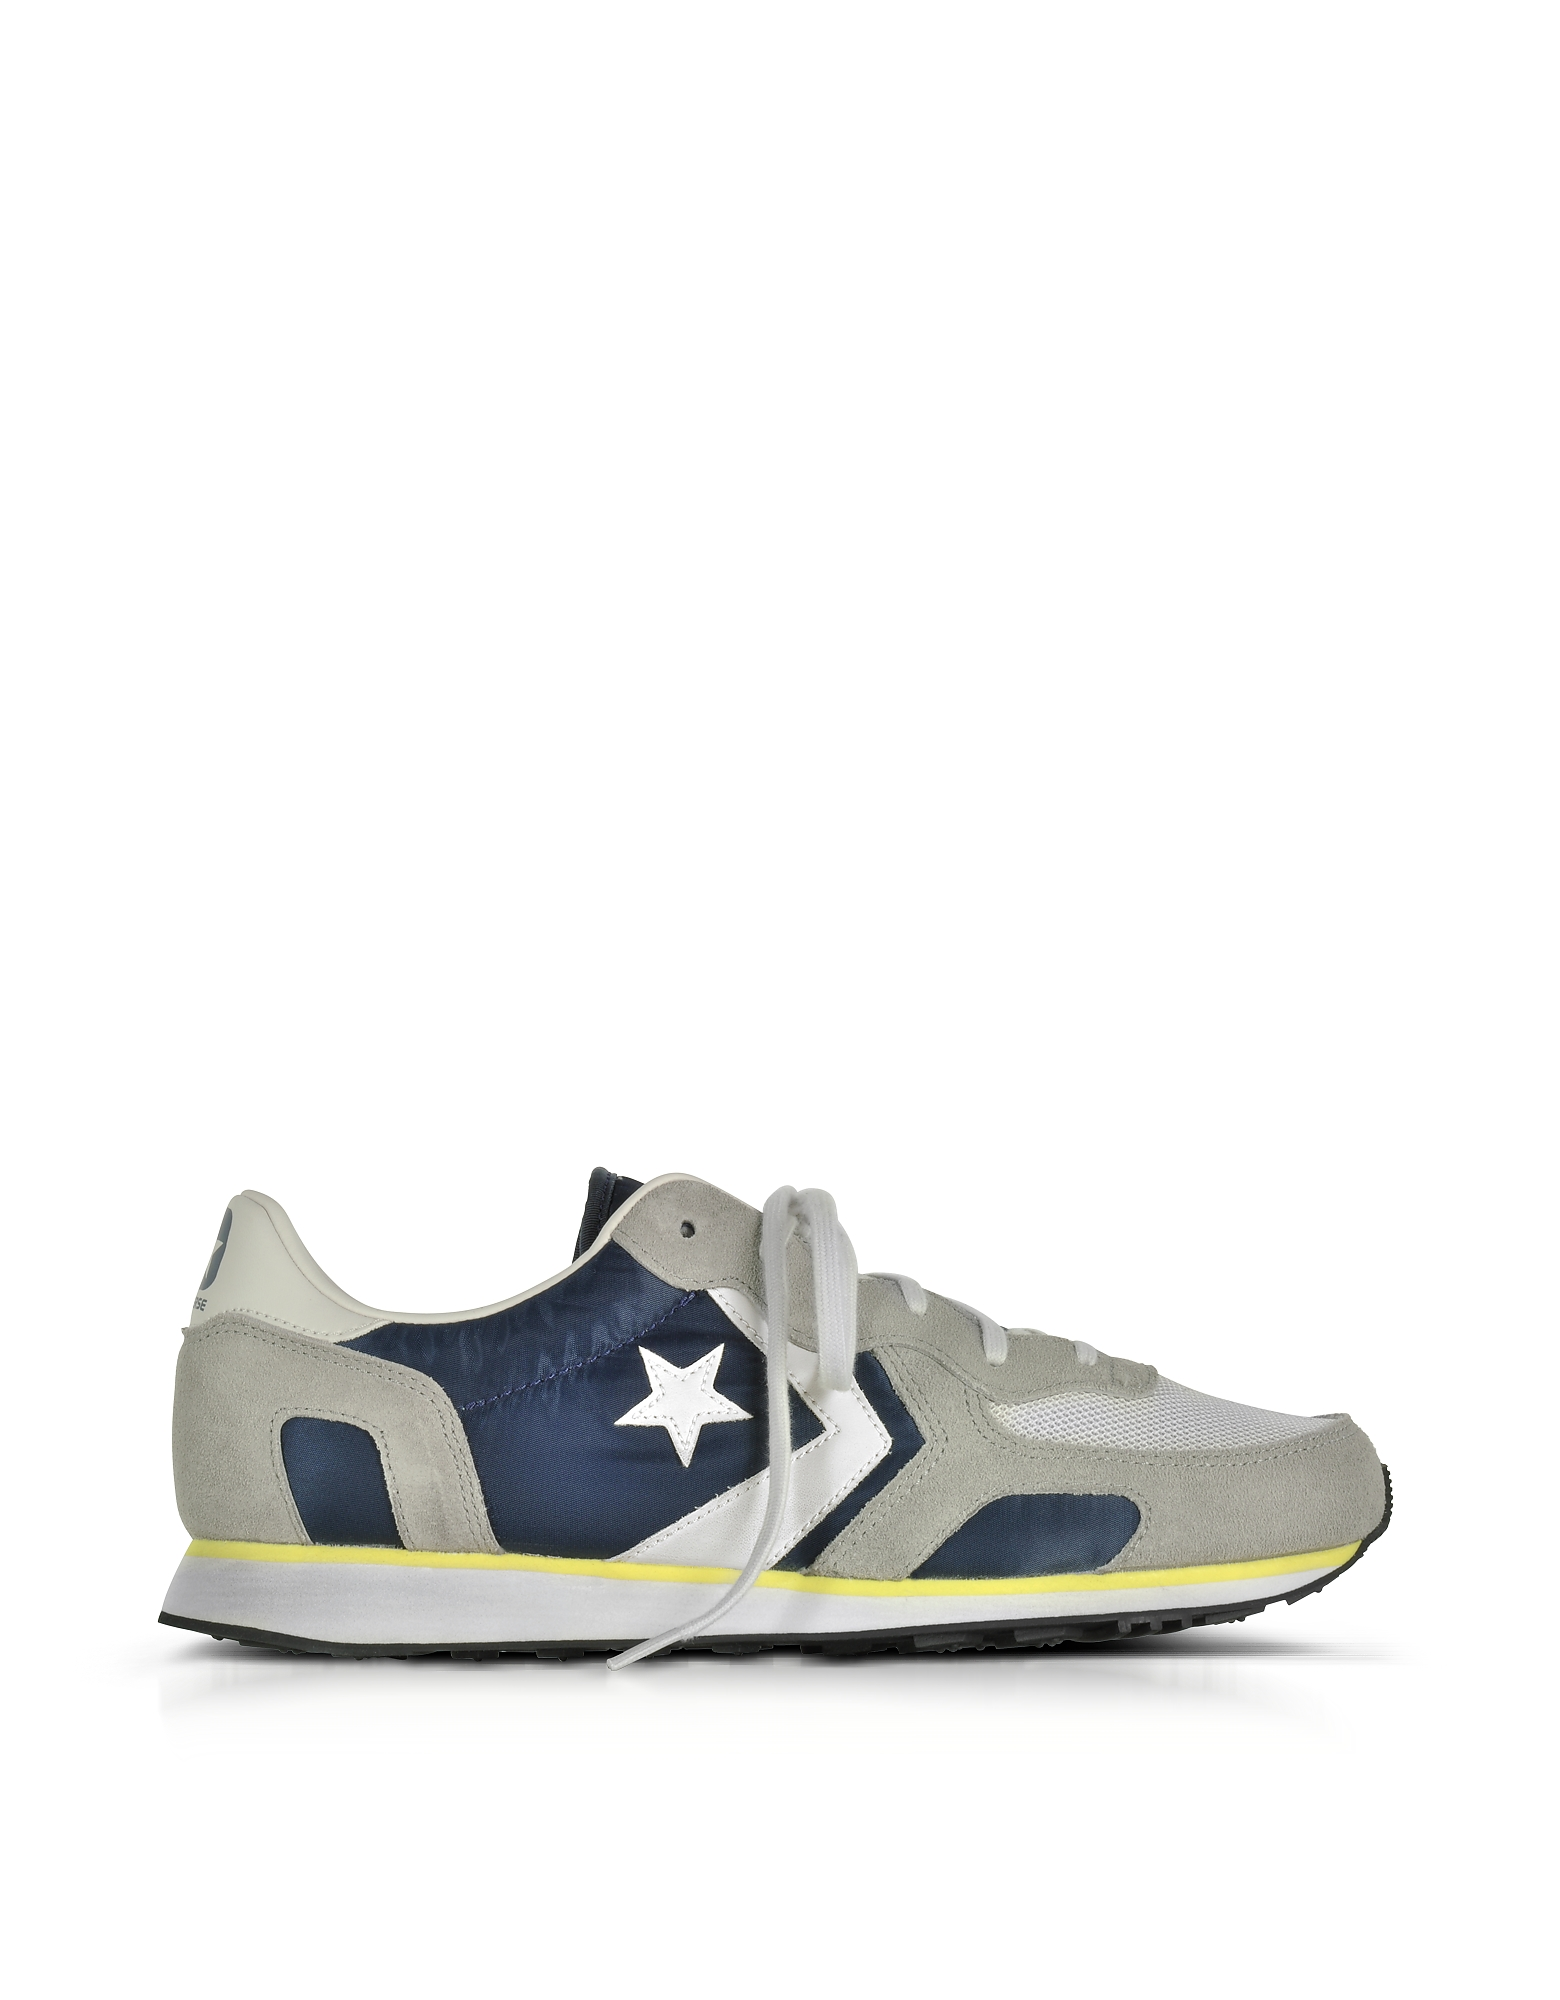 Converse Limited Edition Auckland Racer Distressed Ox - Мужские Кроссовки Отенков Athletic Navy, Ghost Gray и Buff